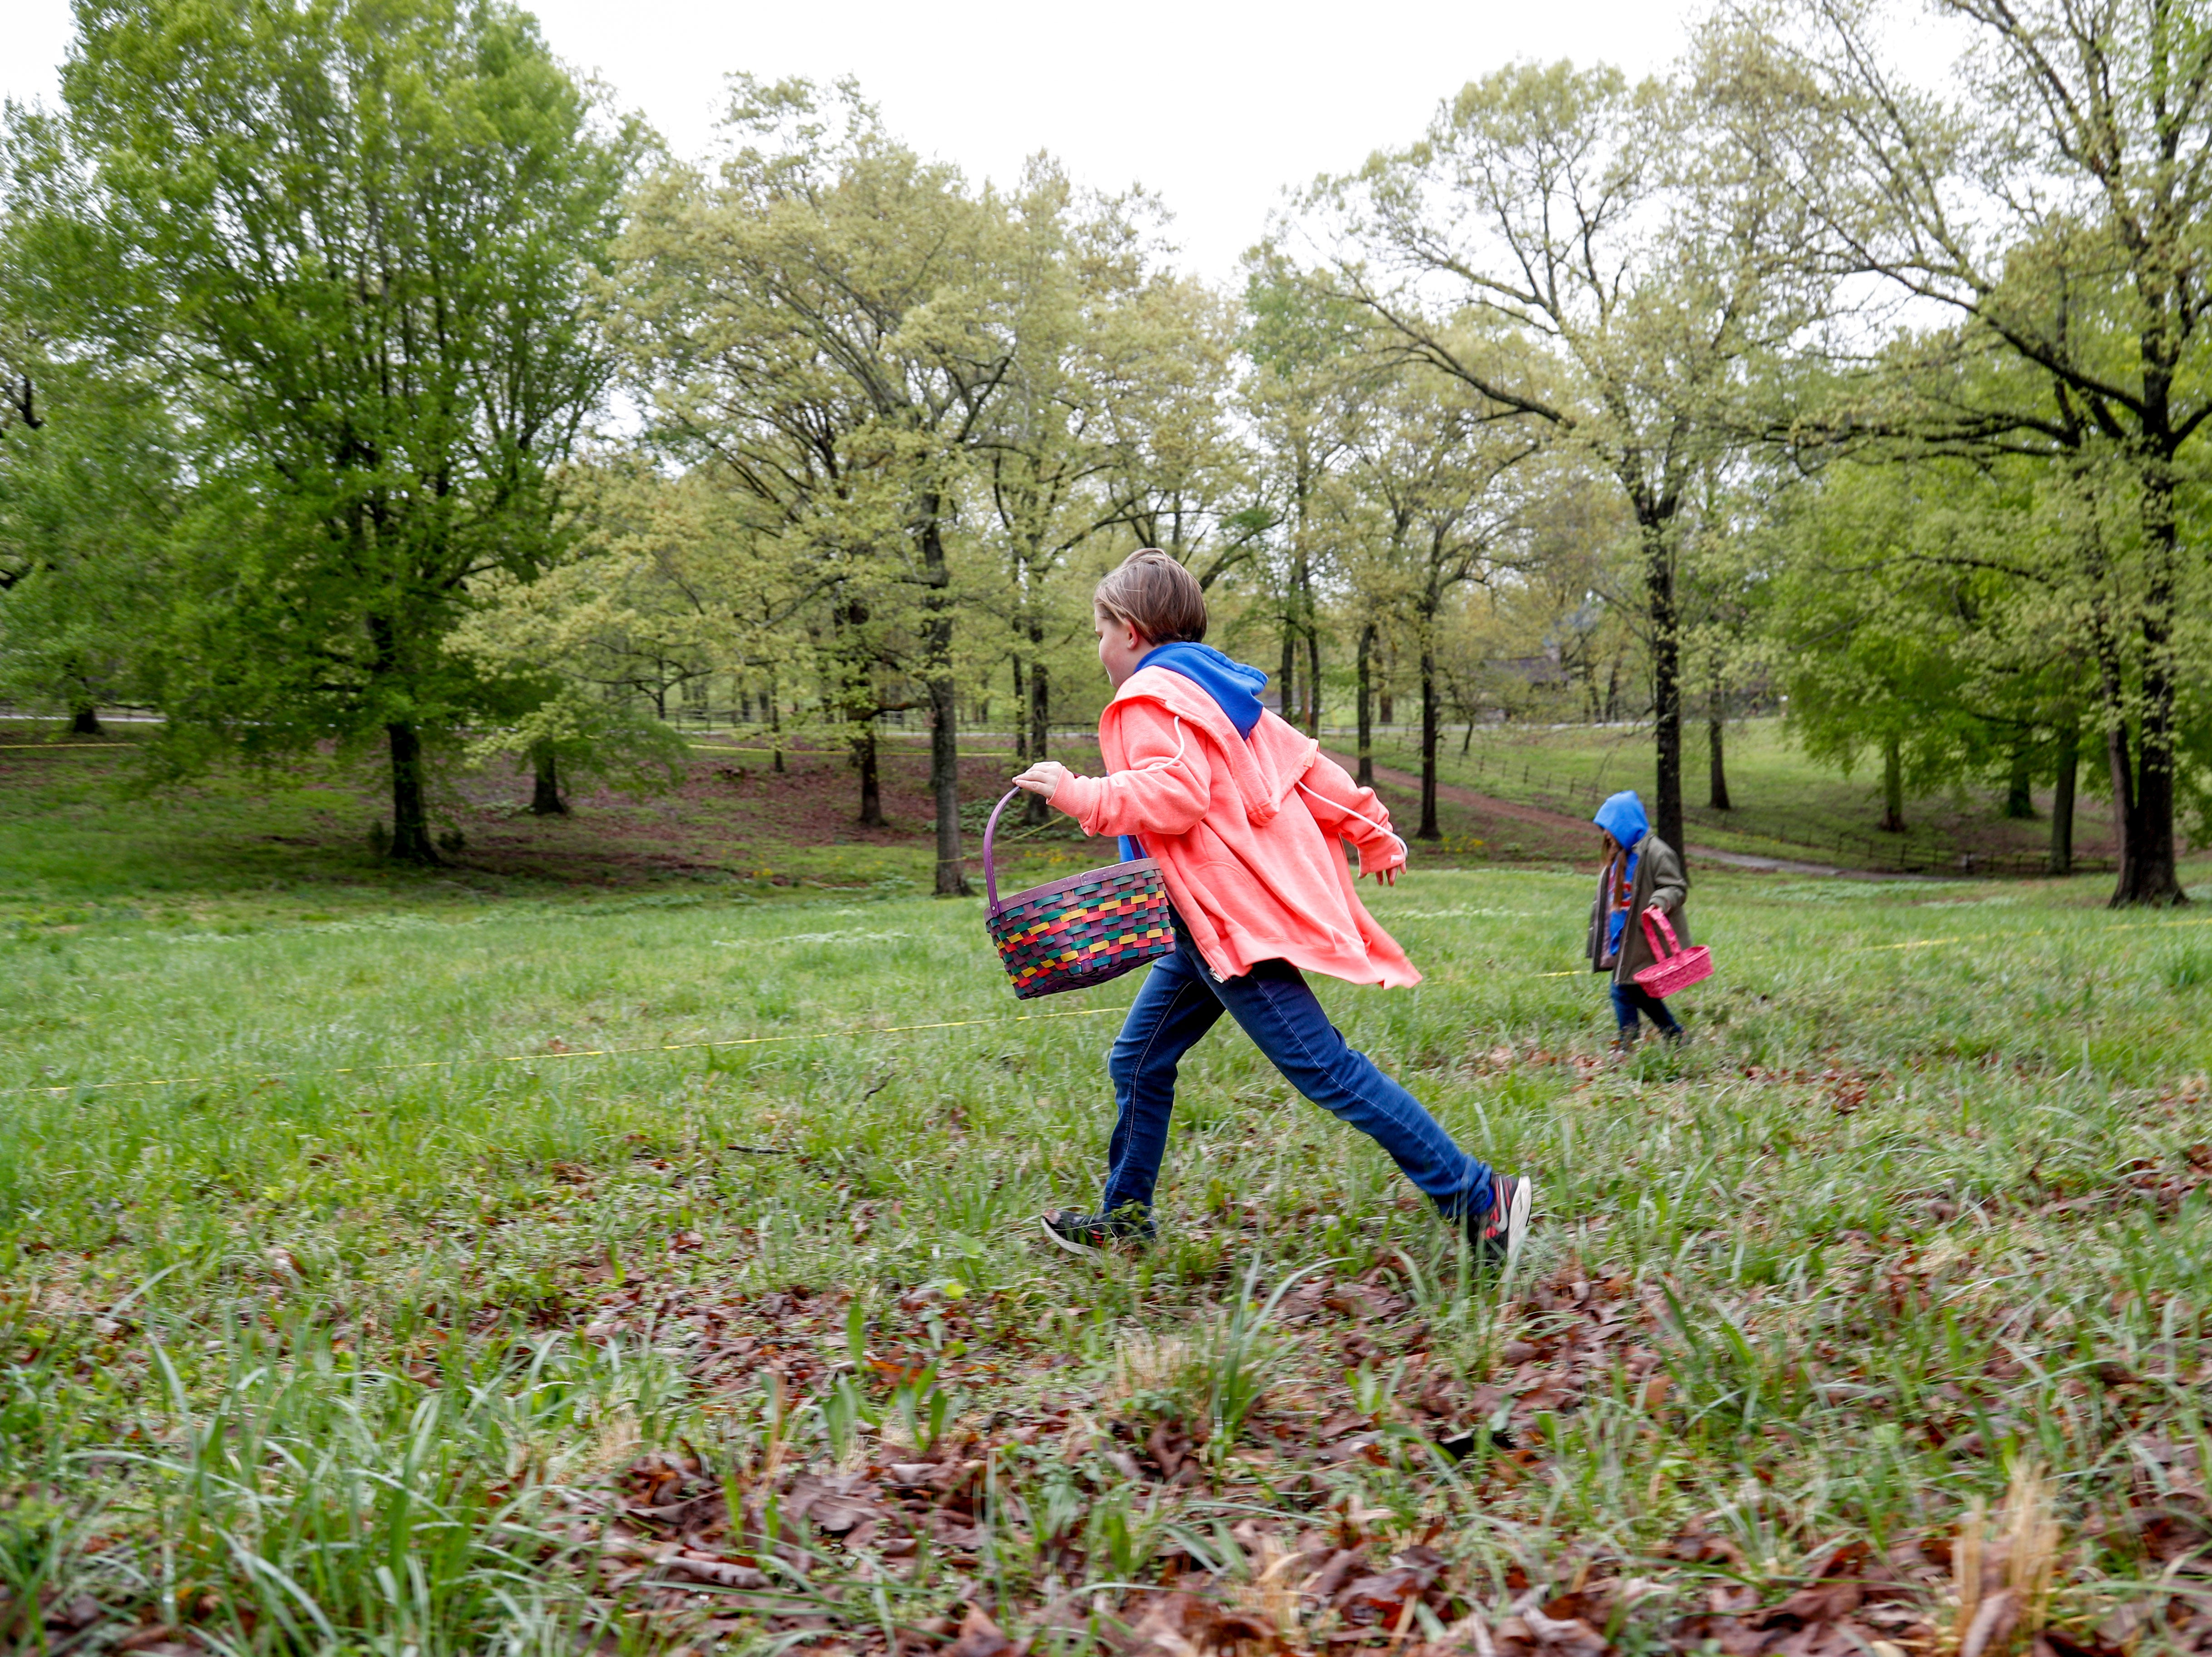 Egg hunters sprint through the grass in search of eggs including a golden one at the annual Easter egg hunts at Historic Collinsville in Clarksville, Tenn., on Saturday, April 20, 2019.